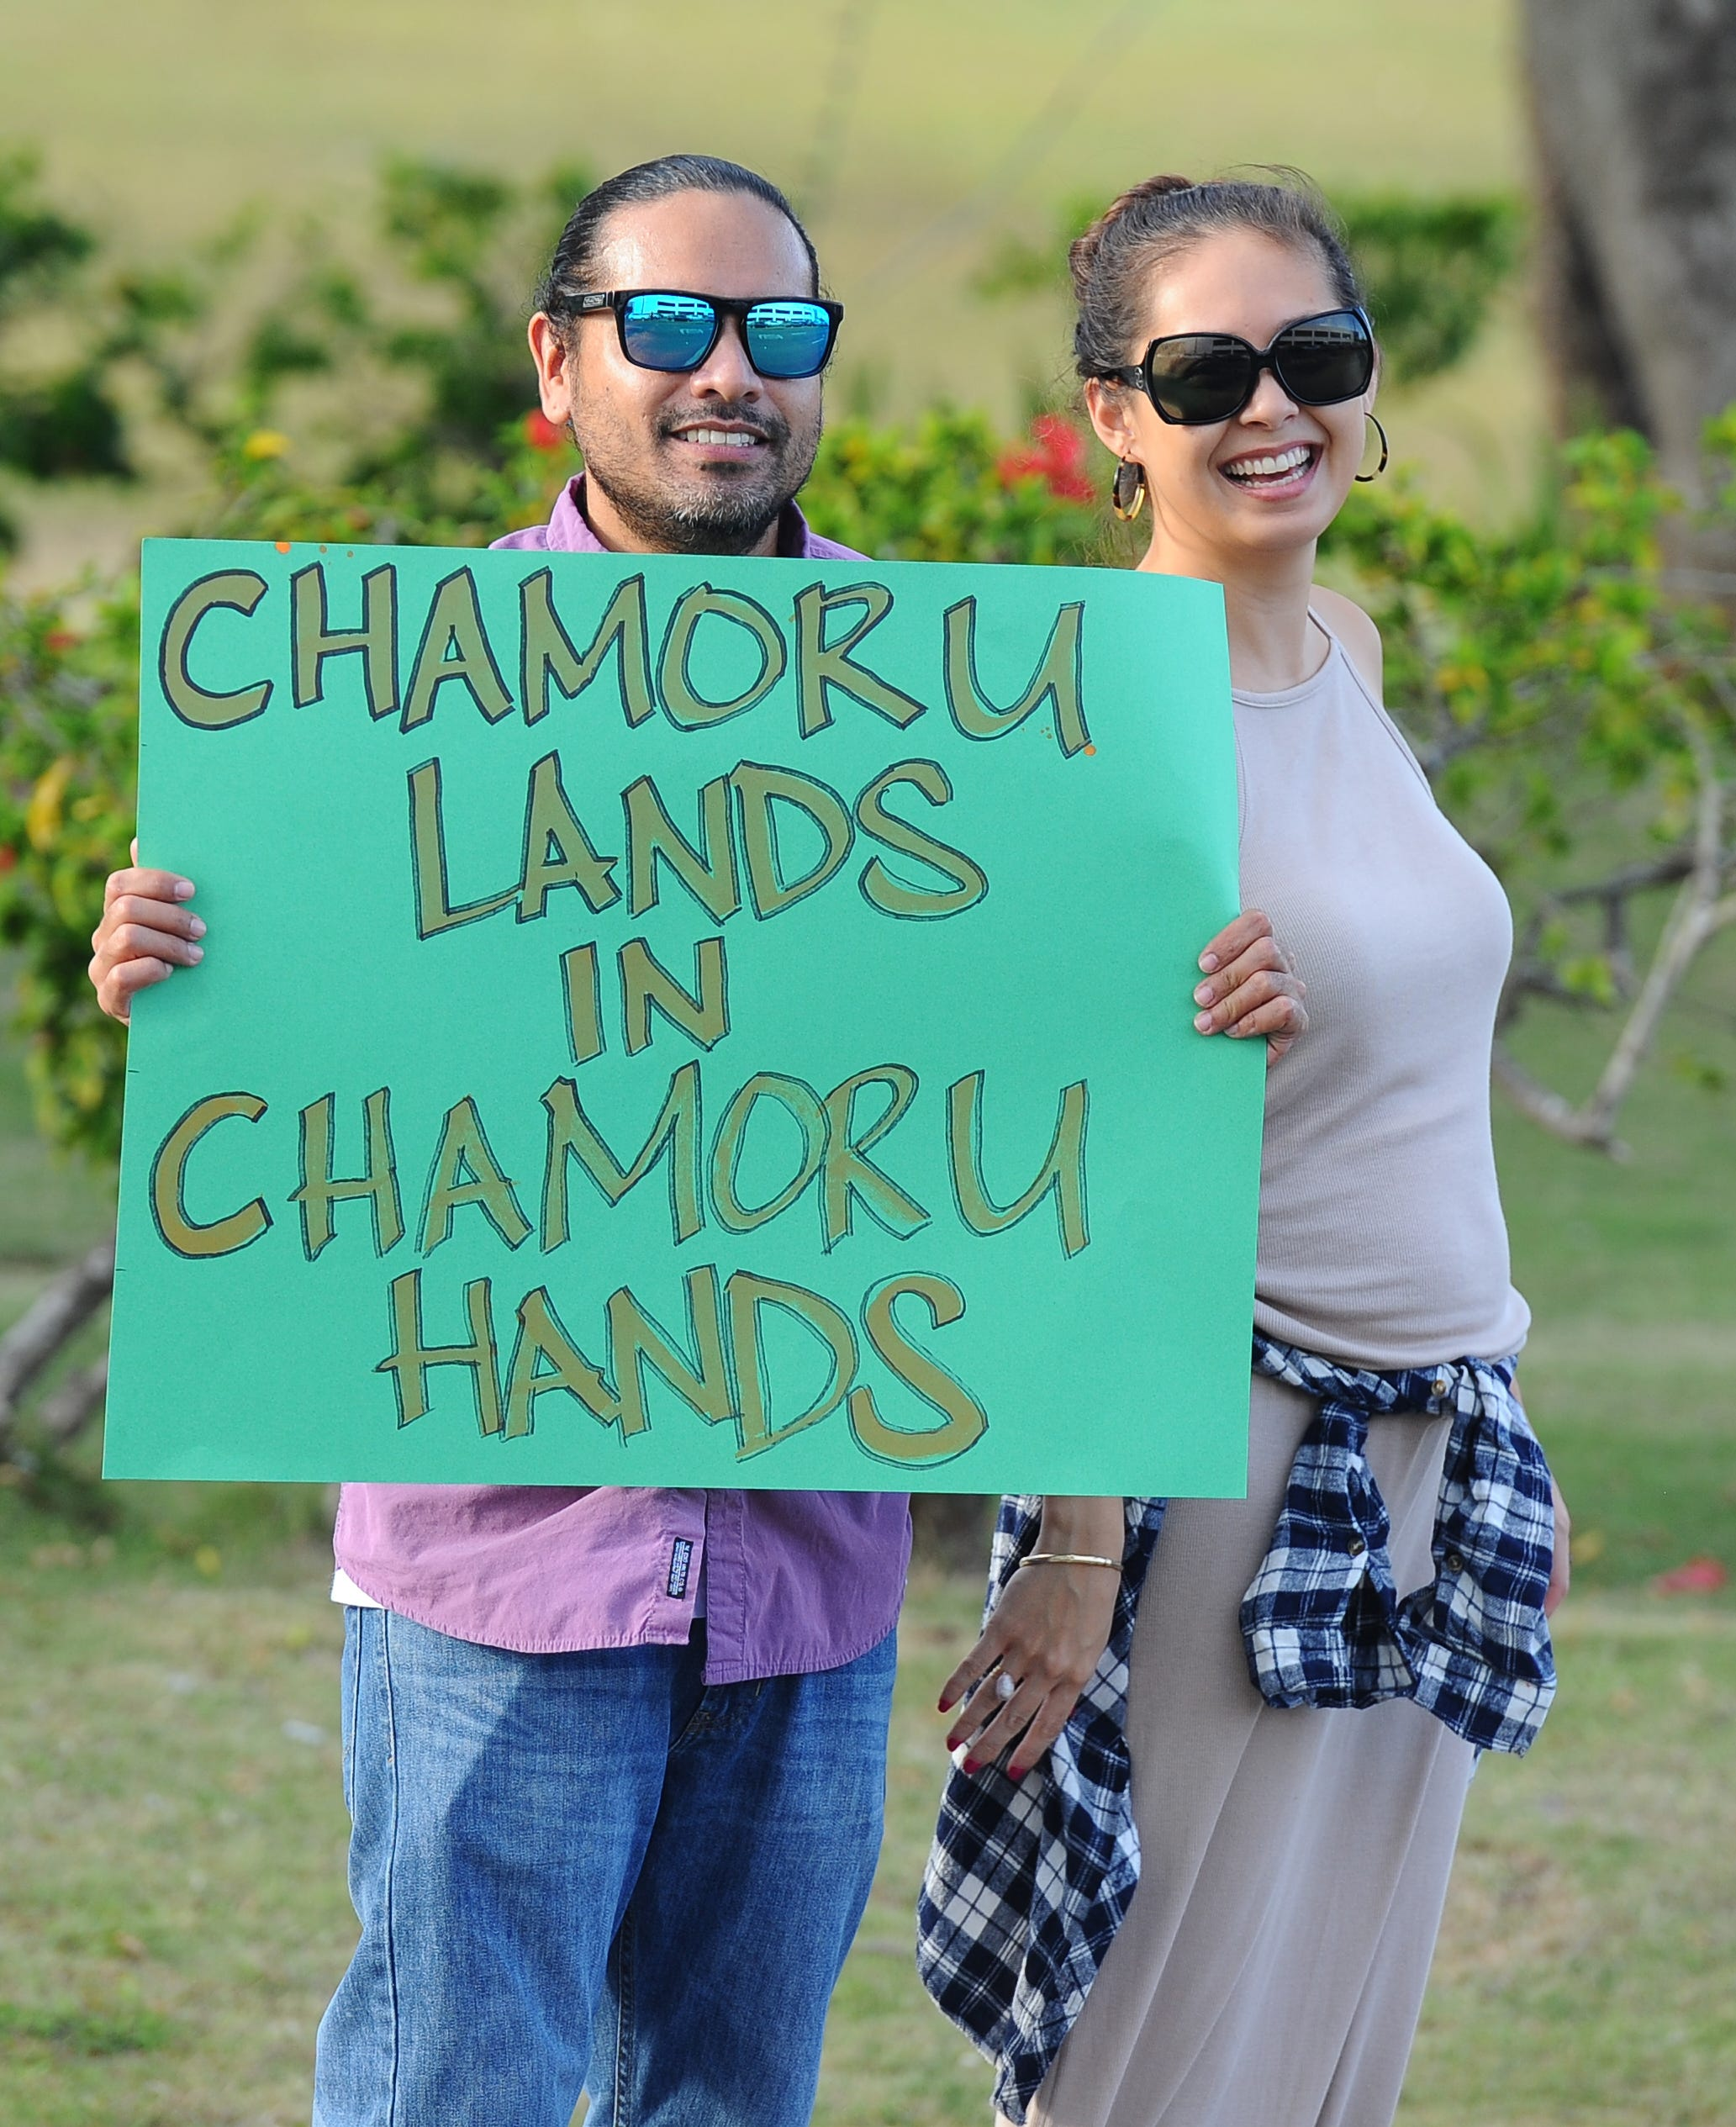 In this March 2016 file photo, activists gather in Tamuning to protest the Chamorro Land Trust Commission's leasing of land to non-Chamorros for commercial use. The U.S. Department of Justice has determined the entire Land Trust program illegally discriminates based on race and wants to enter into a consent decree with the government of Guam.